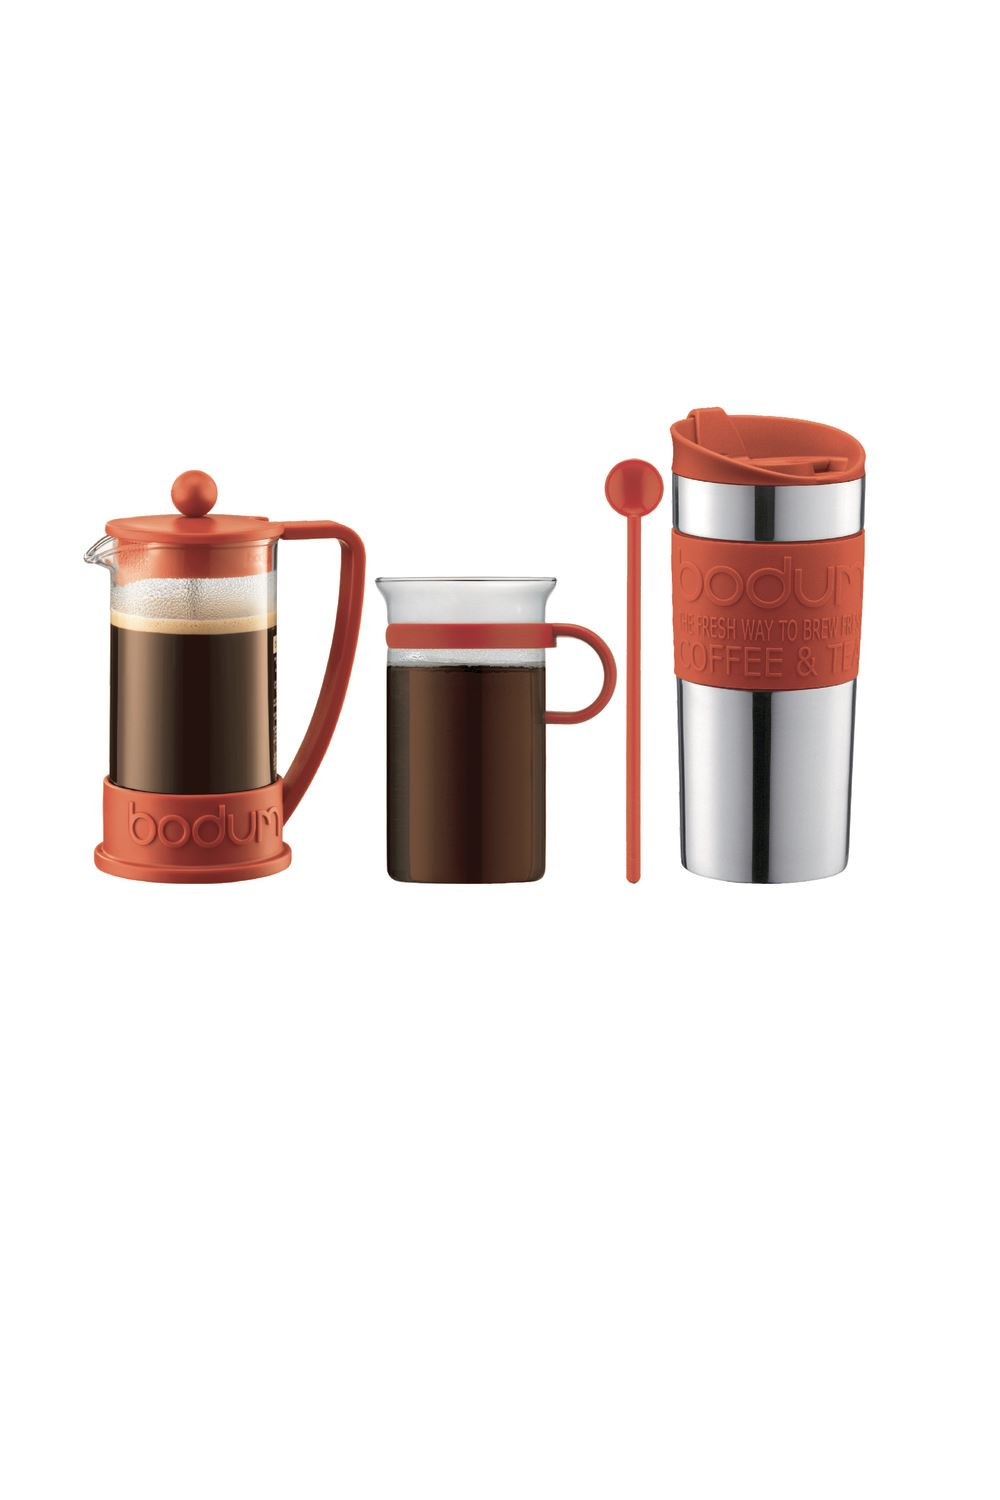 bodum kaffeeset brazil 4 teilig kaffeebereiter tasse reisebecher rot k10948 294. Black Bedroom Furniture Sets. Home Design Ideas